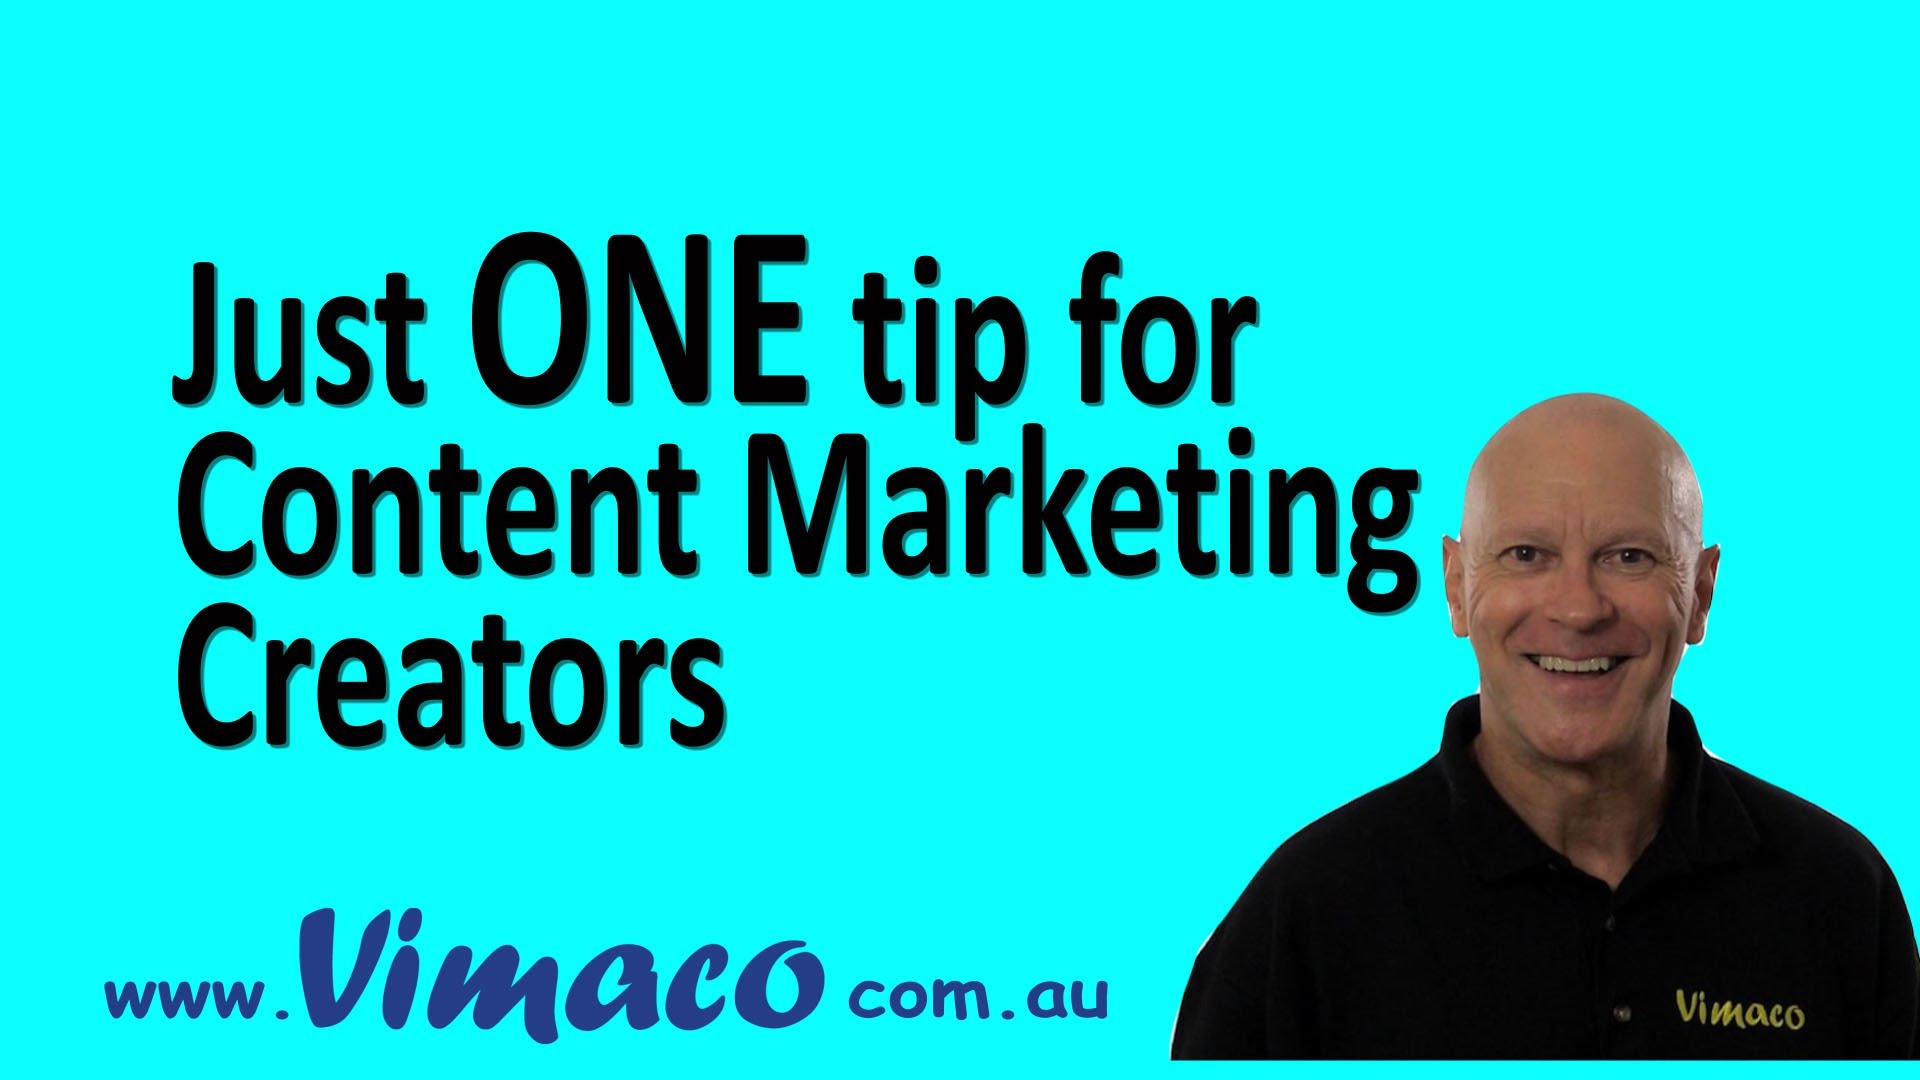 ONE tip for all Content Creators